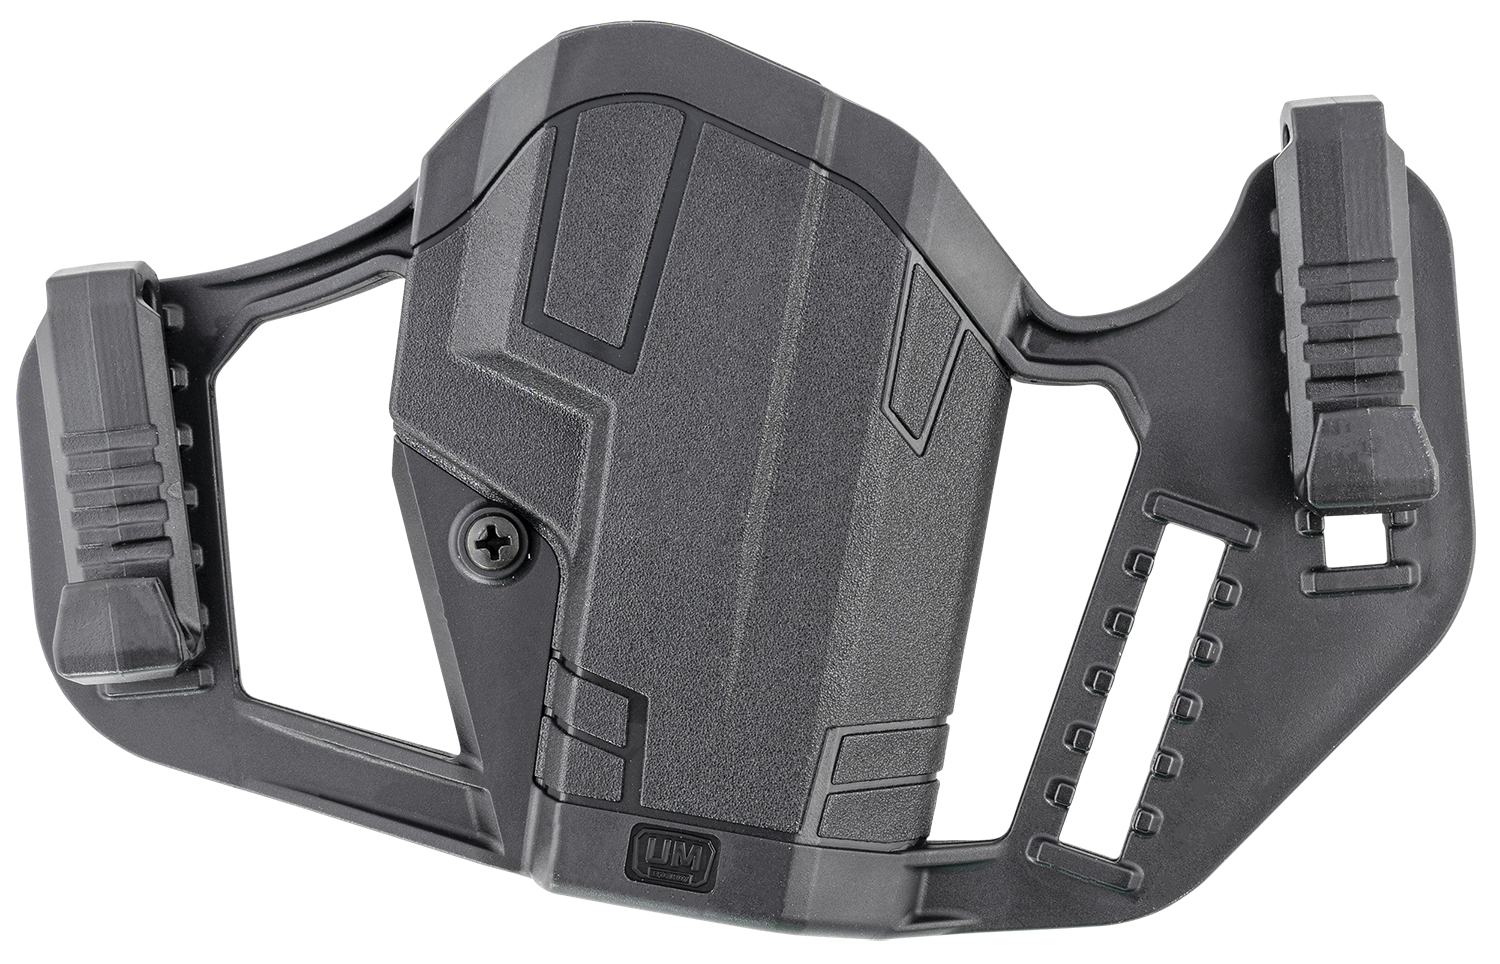 Uncle Mikes 79210 Apparition Hip Holster Black Synthetic IWB/OWB Fits Glock 19/23/26/27 Ambidextrous Hand